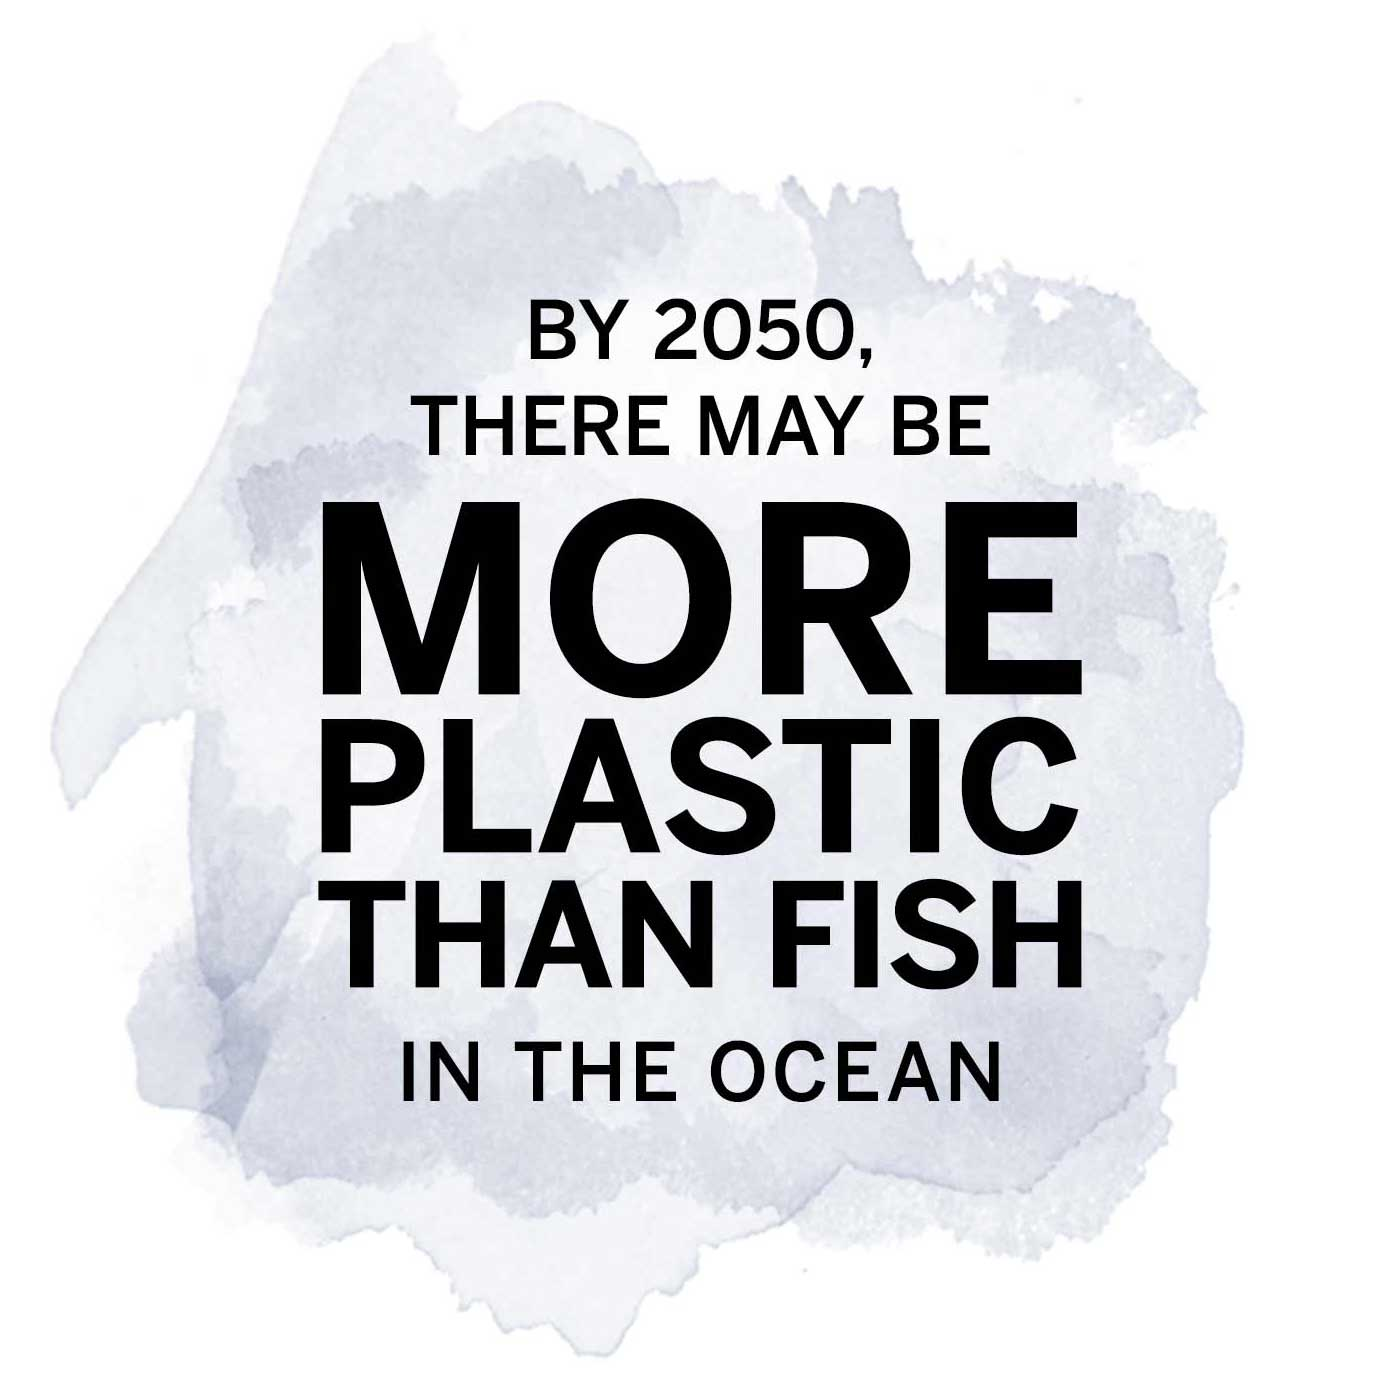 By 2050, there may be more plastic than fish in the ocean